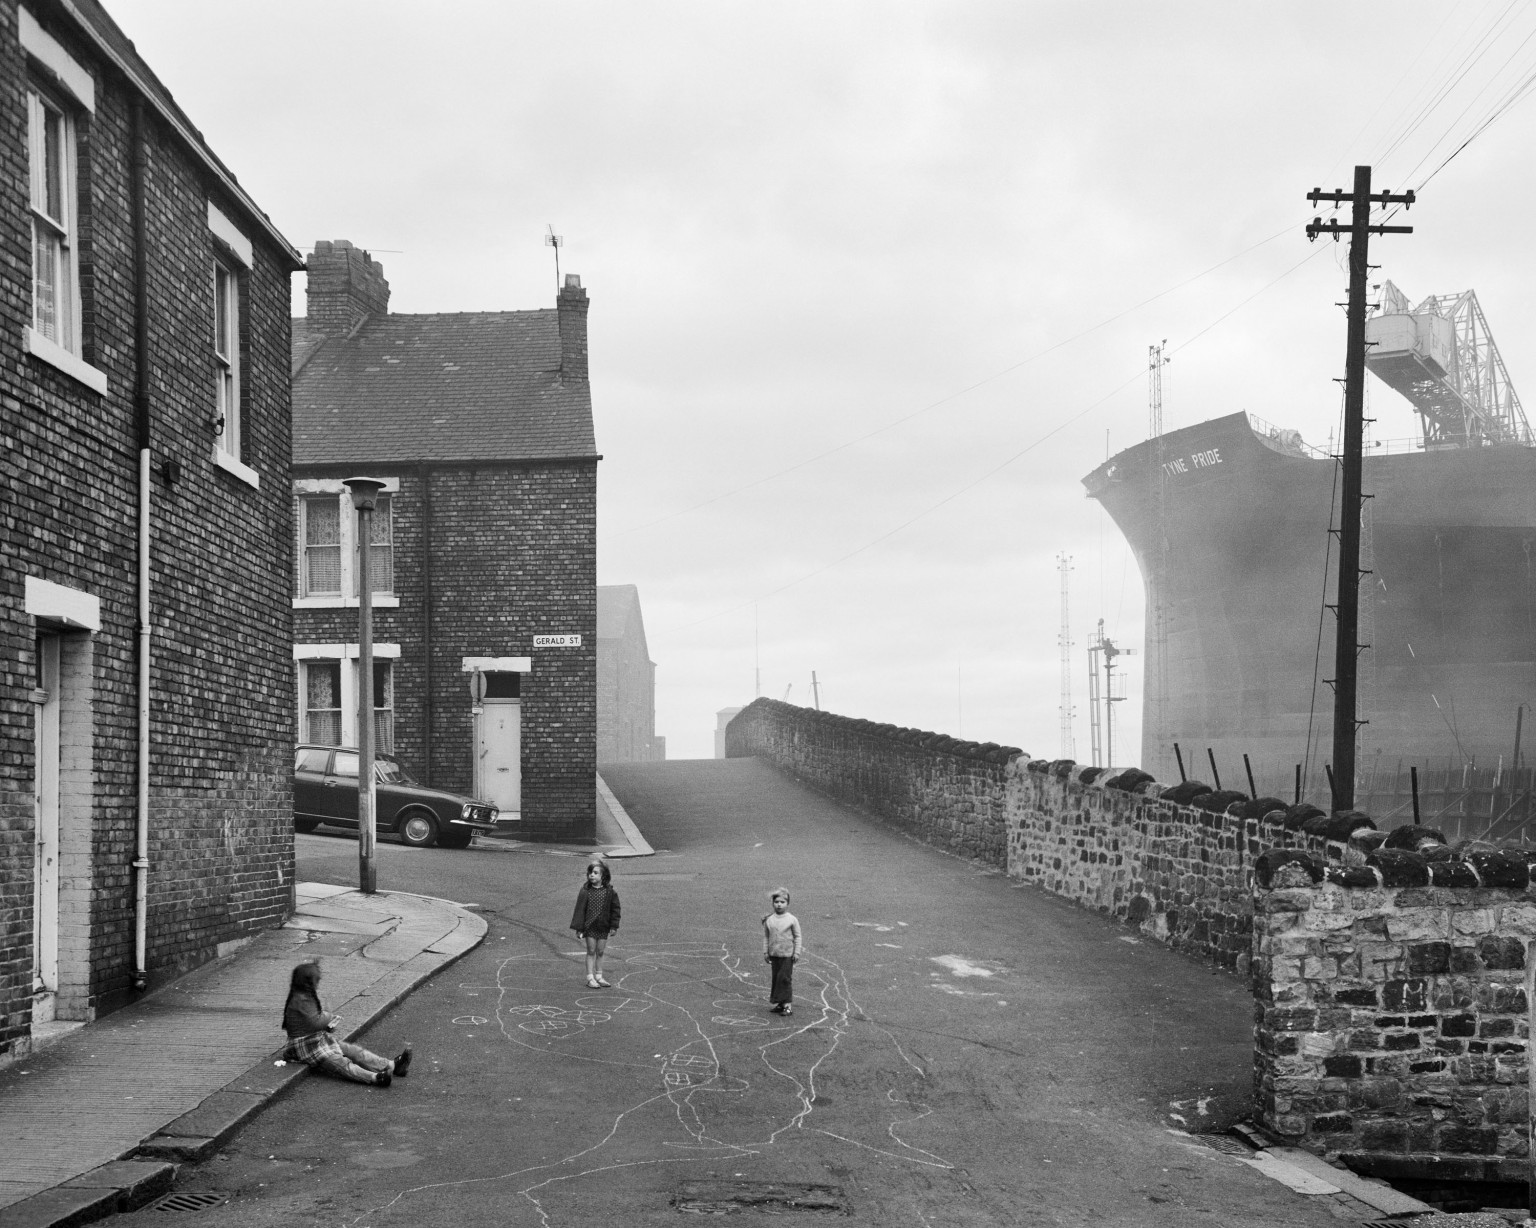 Wallsend Housing Looking East, 1975. Given by the artist in honour of all the shipyard workers of Tyneside, 2017